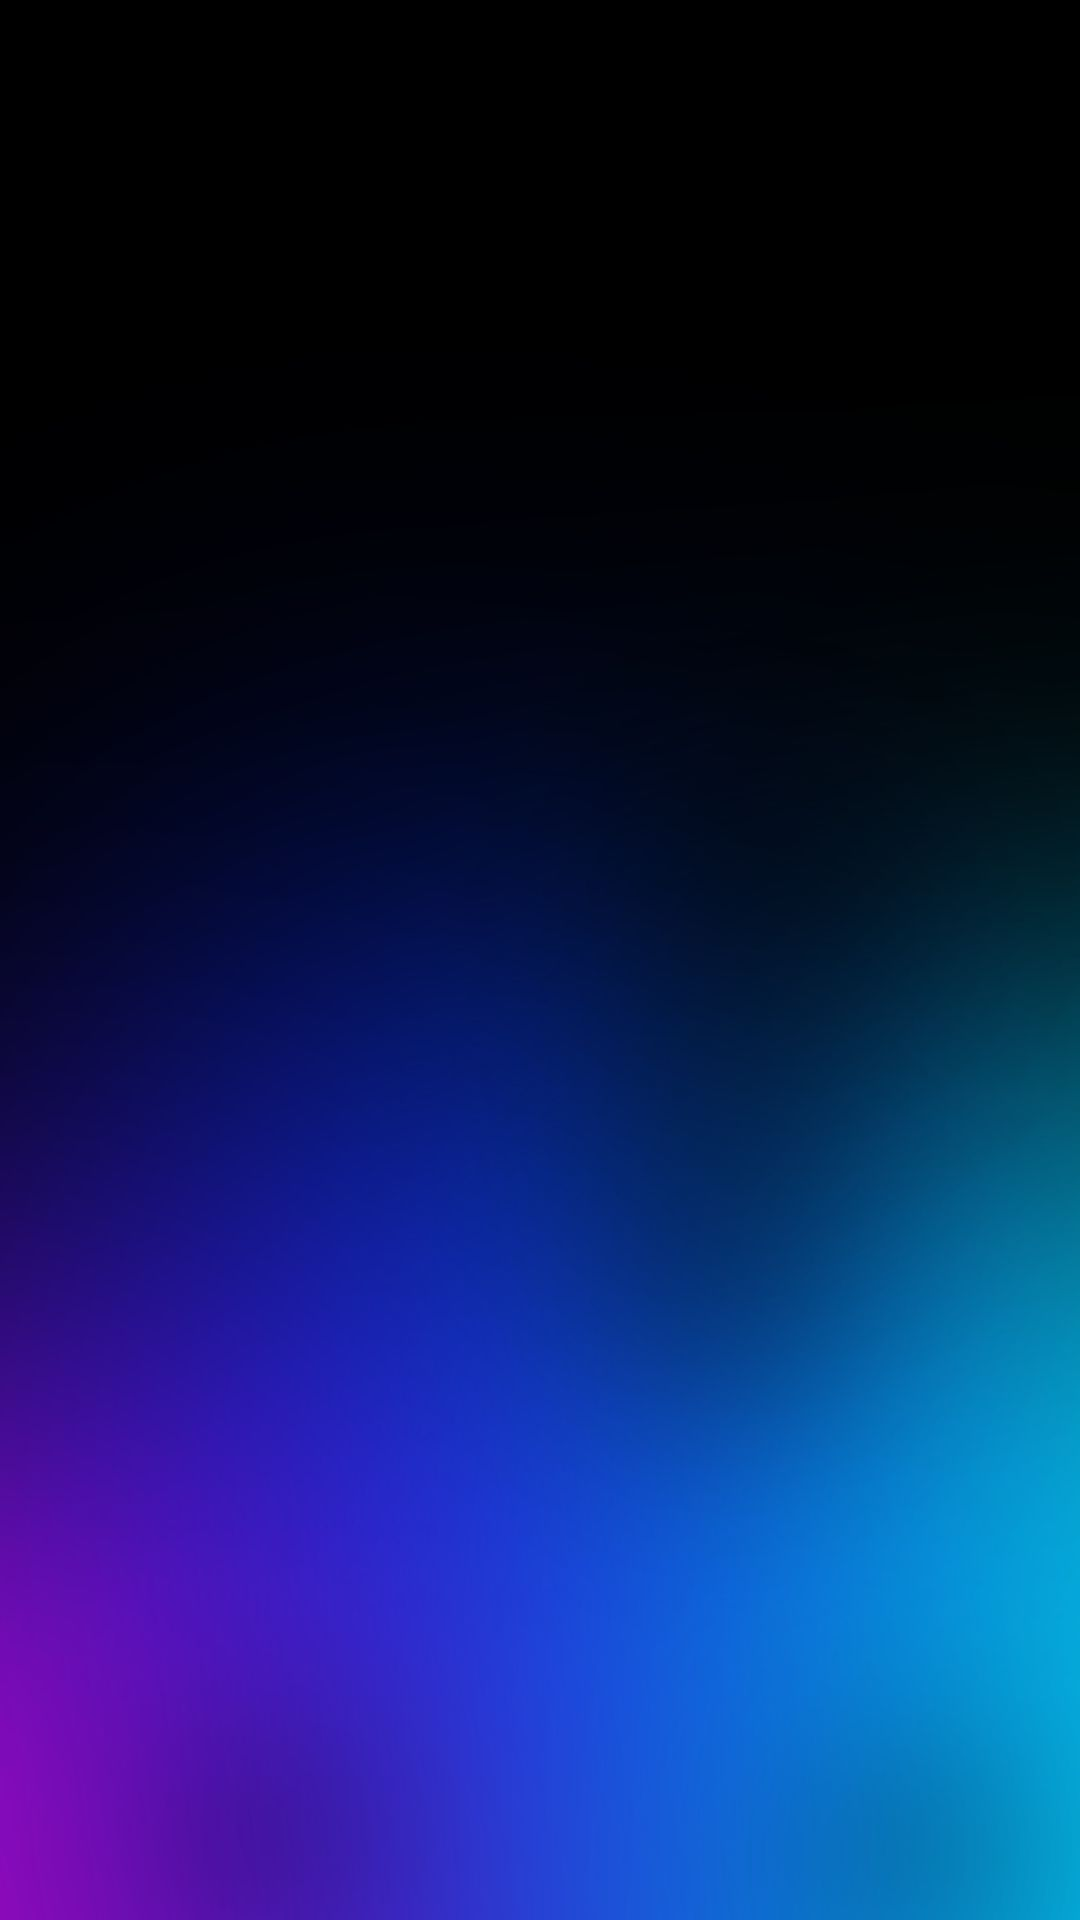 Dark Blue Gradient iPhone Wallpaper Dark wallpaper